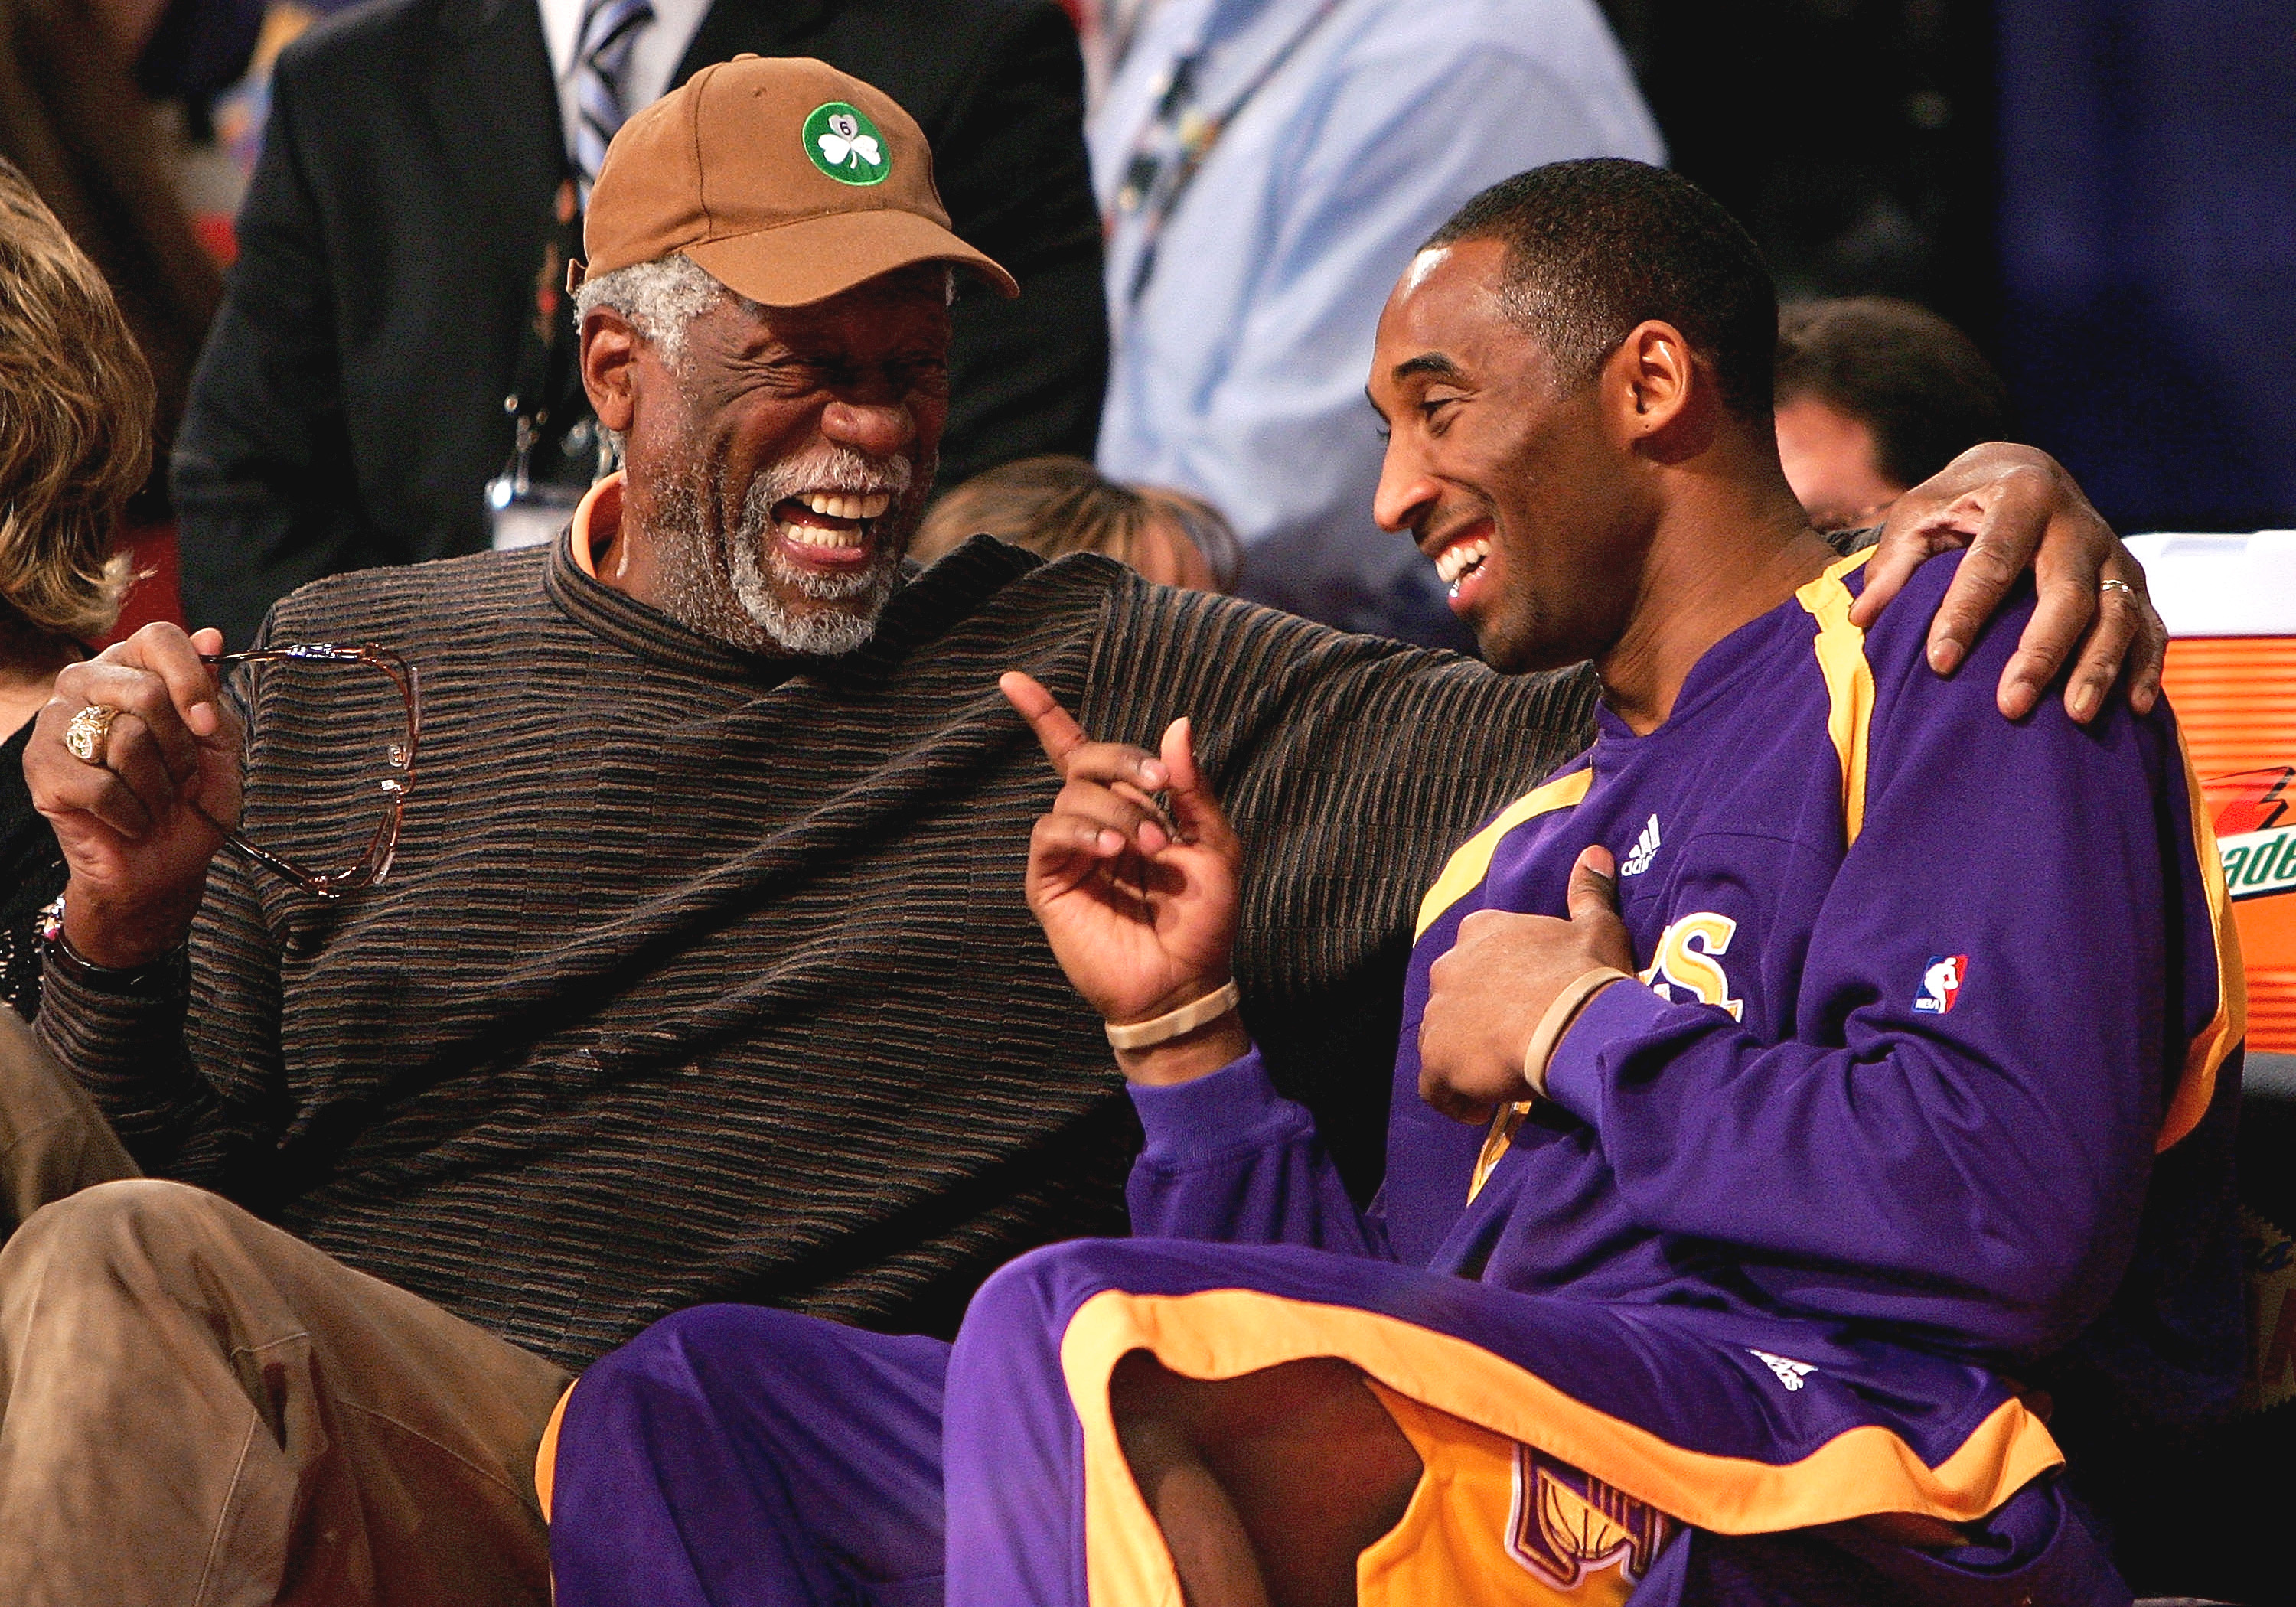 LAS VEGAS - FEBRUARY 17:  NBA legend Bill Russell and Kobe Bryant of the Los Angeles Lakers laugh on the sidelines during the Haier Shooting Stars Competition during NBA All-Star Weekend on February 17, 2007 at Thomas & Mack Center in Las Vegas, Nevada.